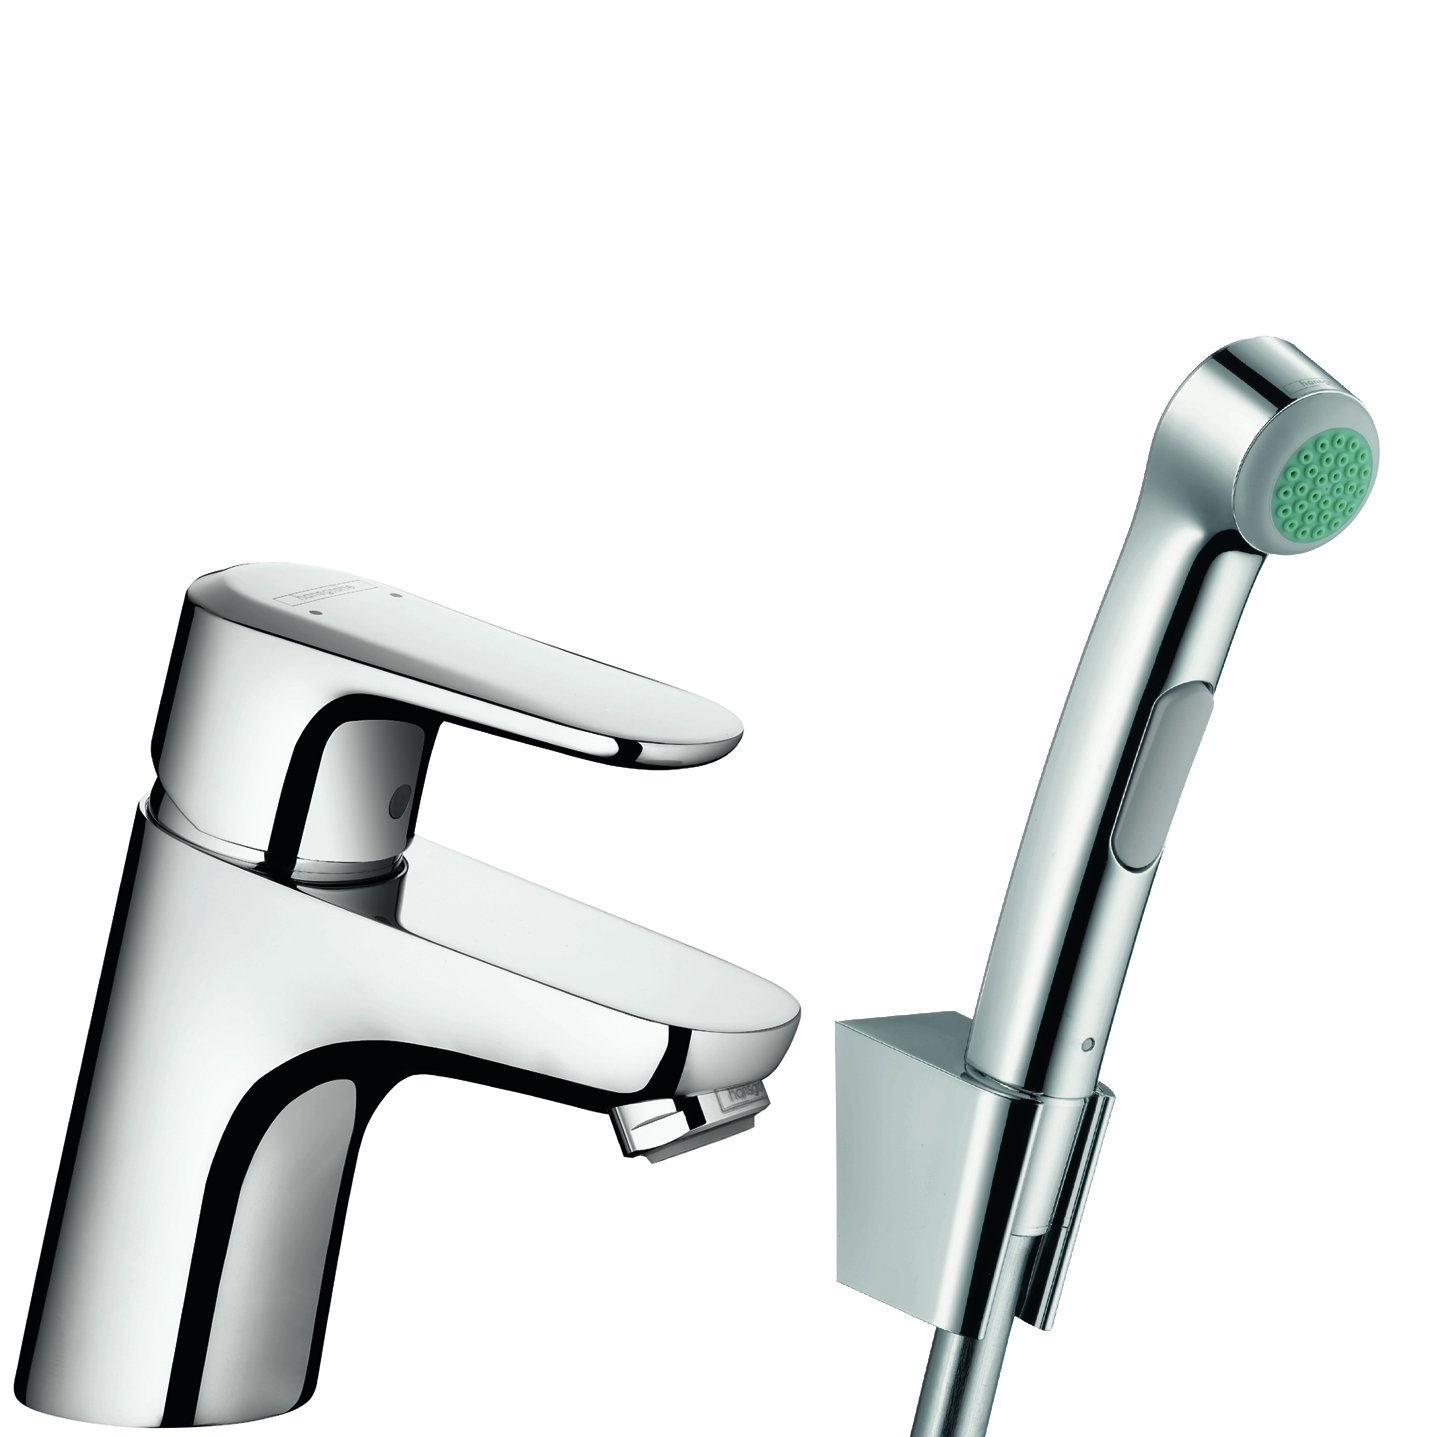 Hansgrohe/ /Toilet Shower for Intimate Toilette Bidet 32126000 Silver